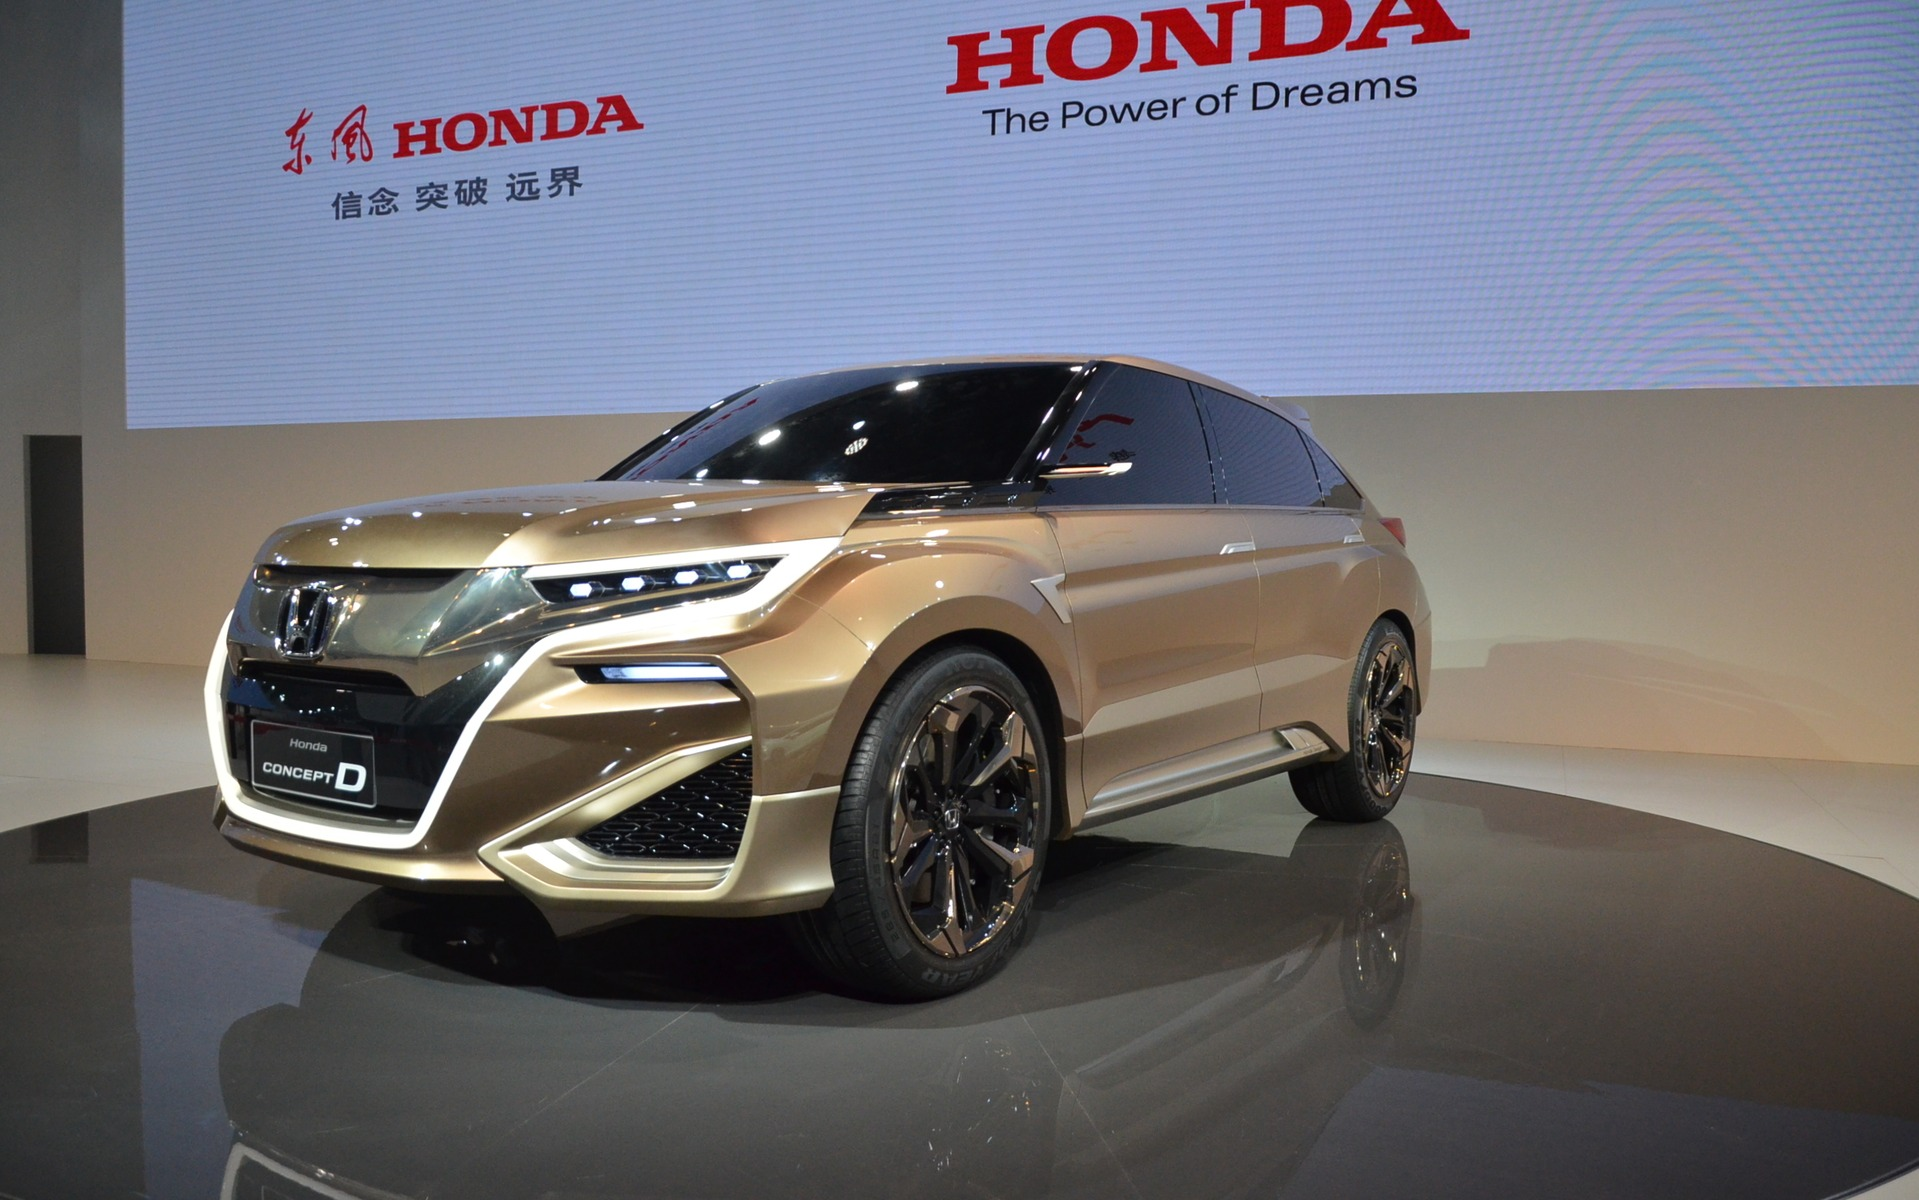 Used Honda Hrv >> Honda Concept D: A China-Only Concept - 3/6